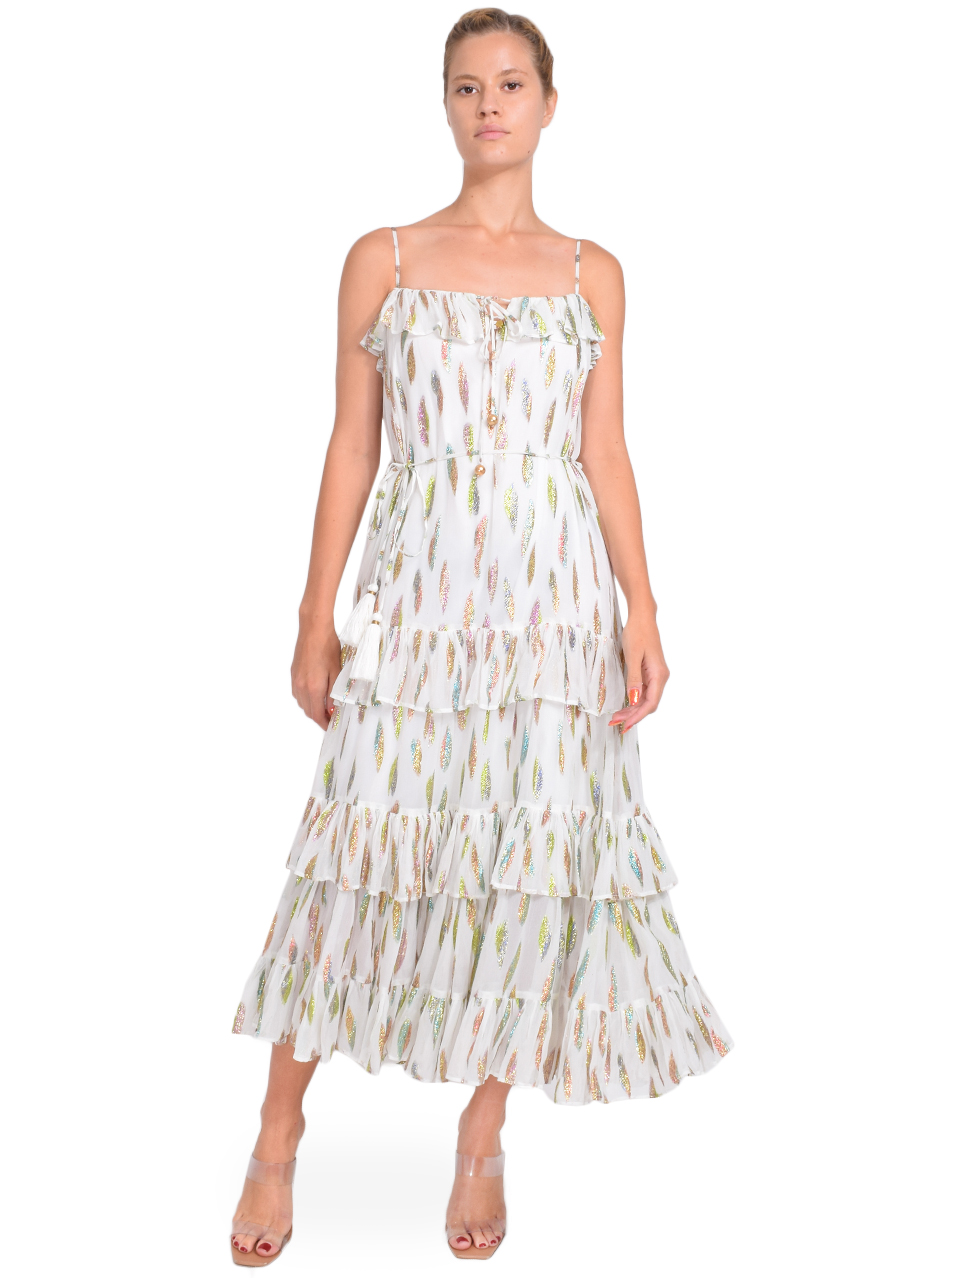 Karina Grimaldi Lori Metallic Print Dress with White Leaf Front View  X1https://cdn11.bigcommerce.com/s-3wu6n/products/33383/images/110349/68__33963.1599787770.244.365.jpg?c=2X2